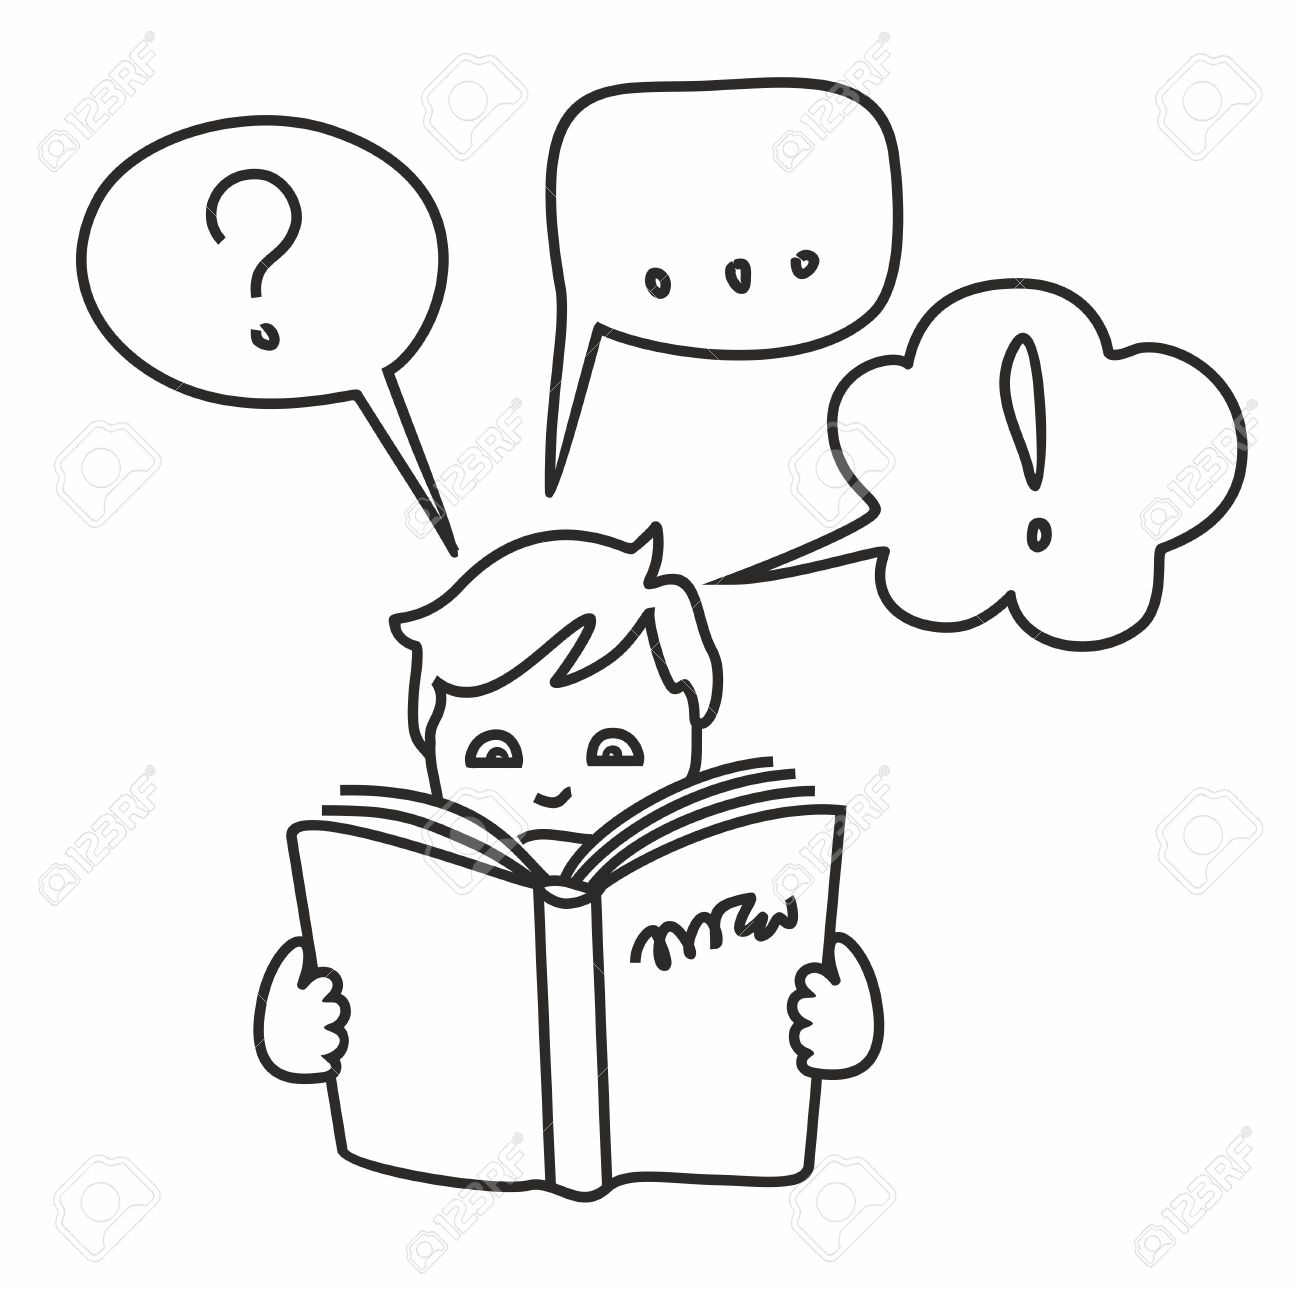 Read A Book Get Information Questions Answers Thoughts Outline